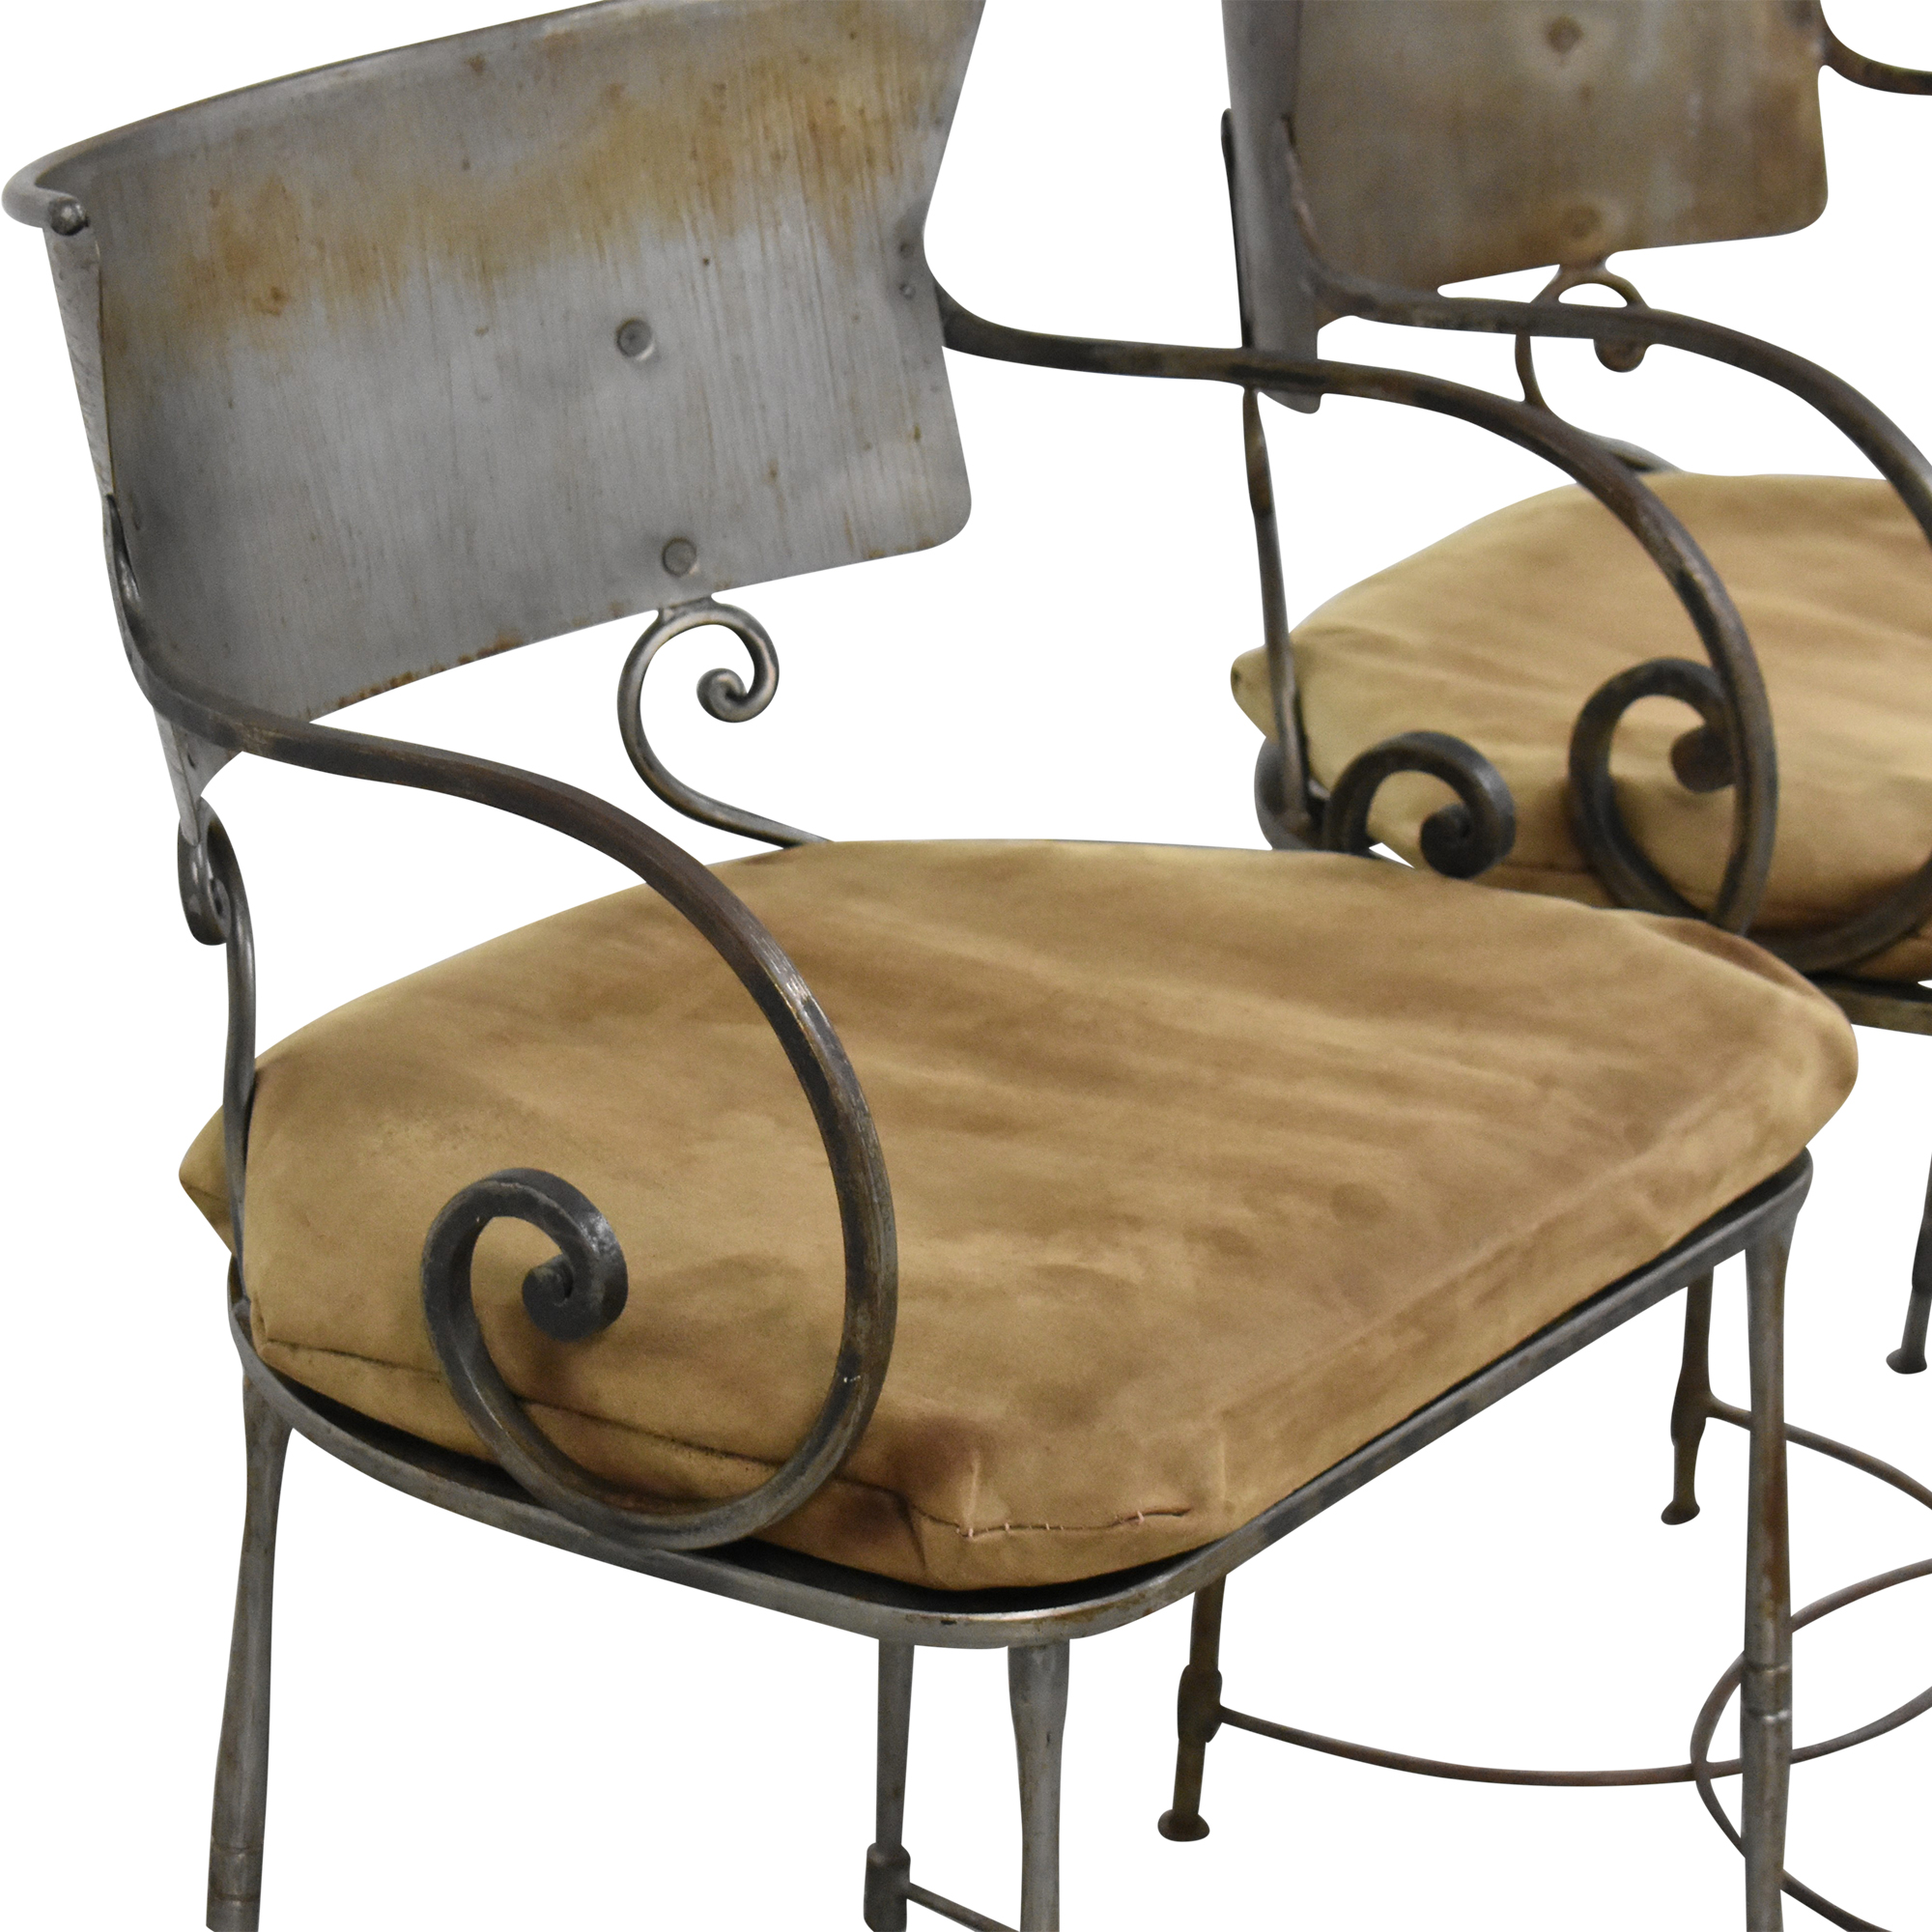 Bloomingdale's Art Deco-Style Chairs / Dining Chairs